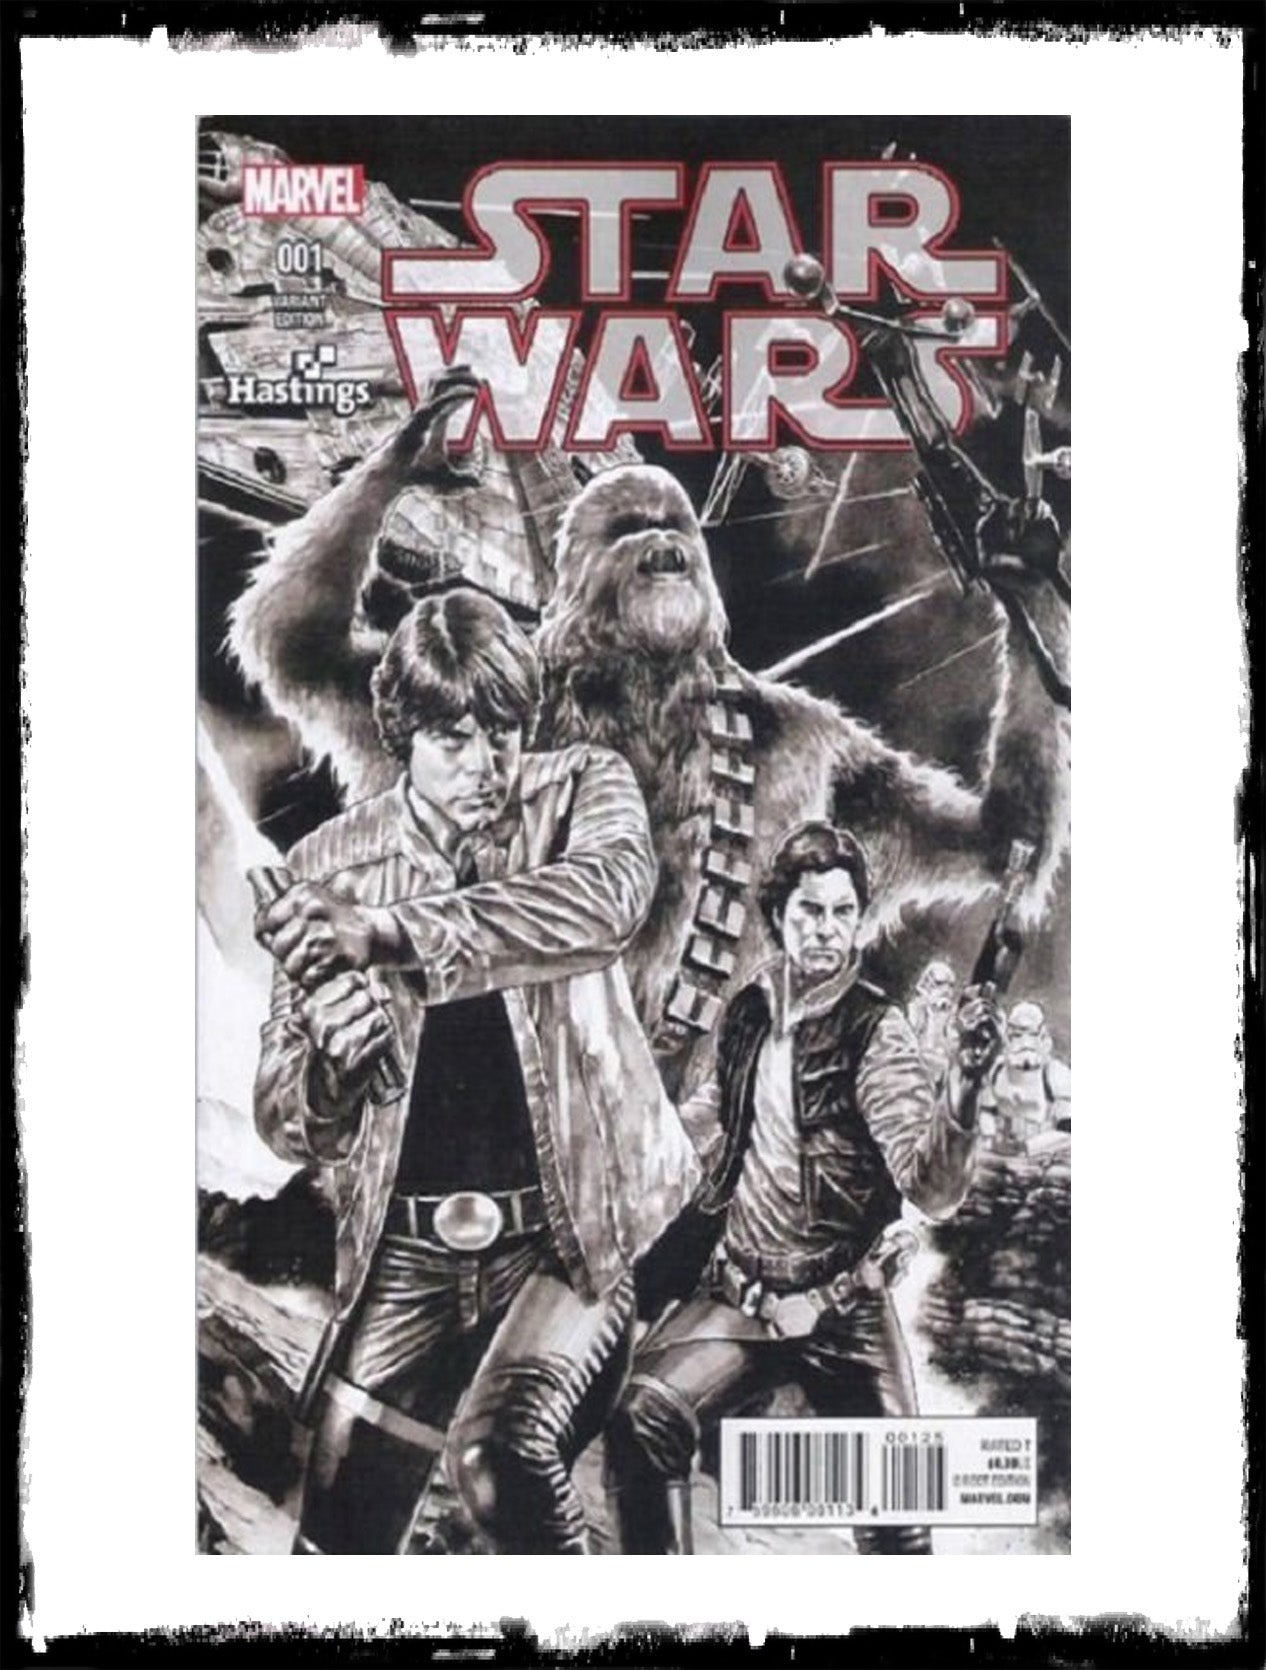 STAR WARS - #1 MICO SUAYAN HASTINGS SKETCH VARIANT (2015 - CONDITION NM)